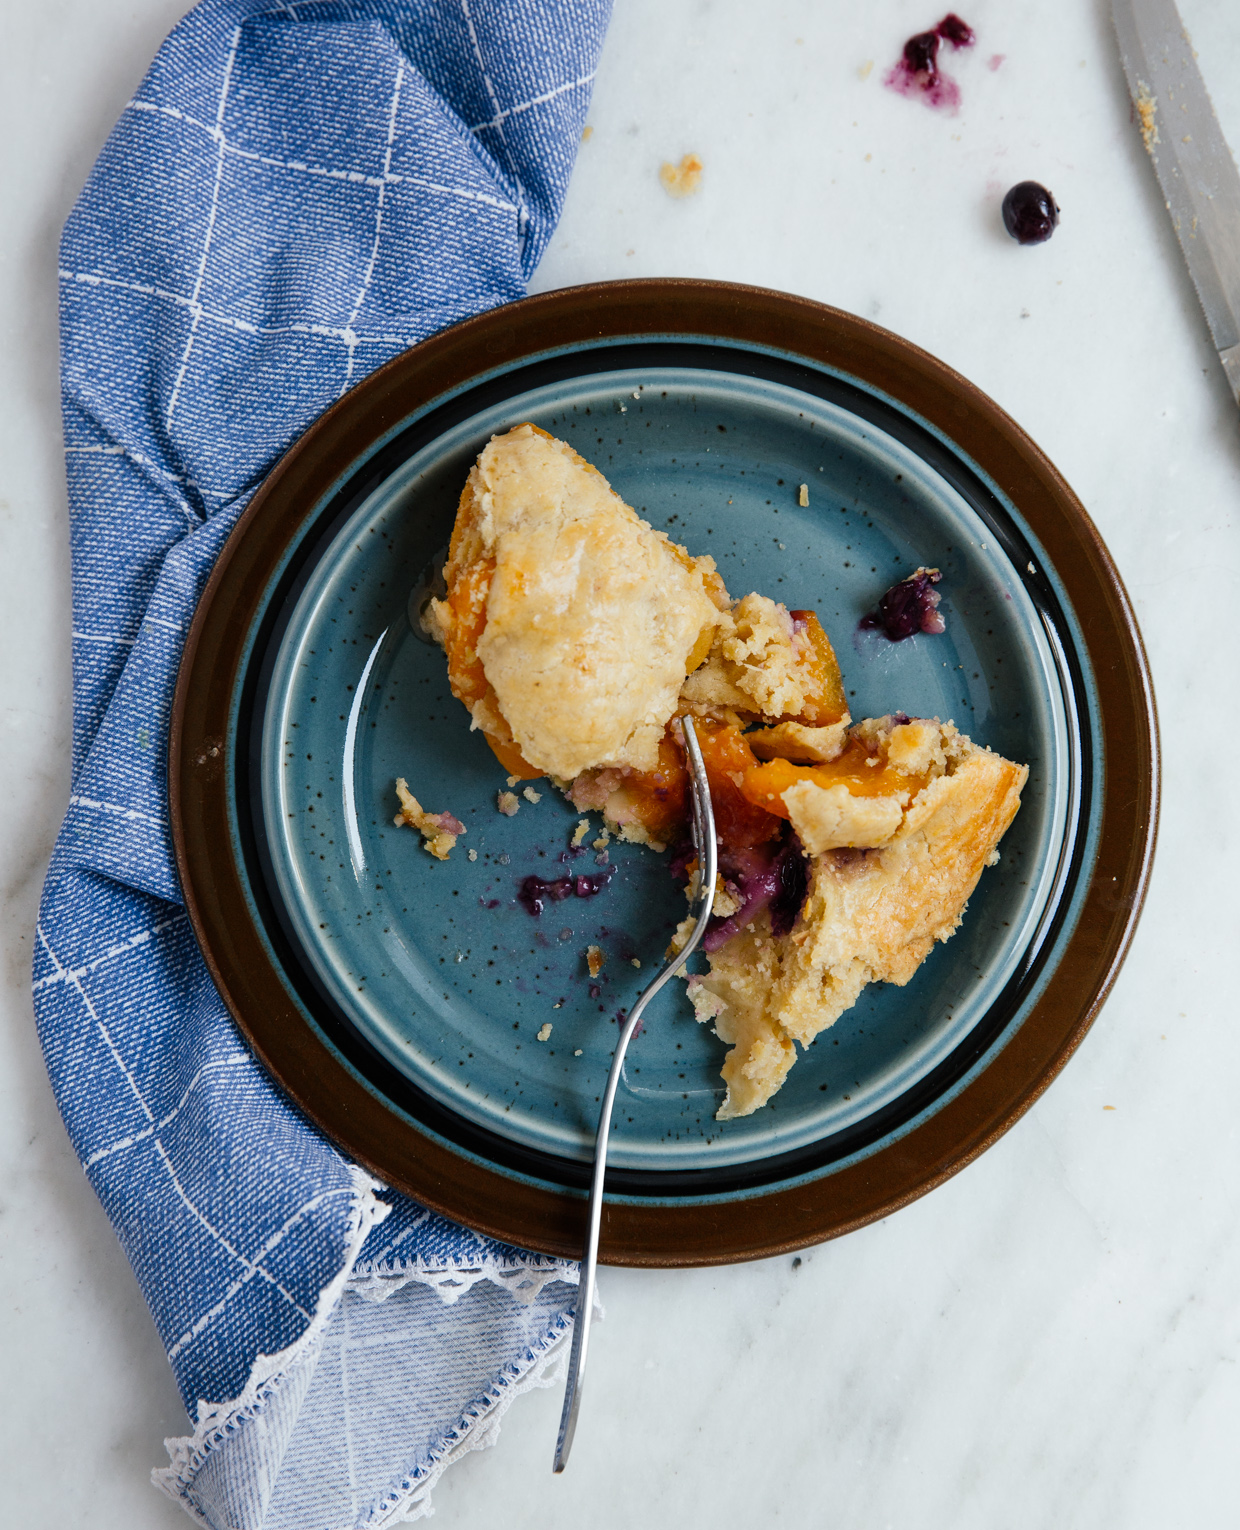 Apricot & blueberry pie